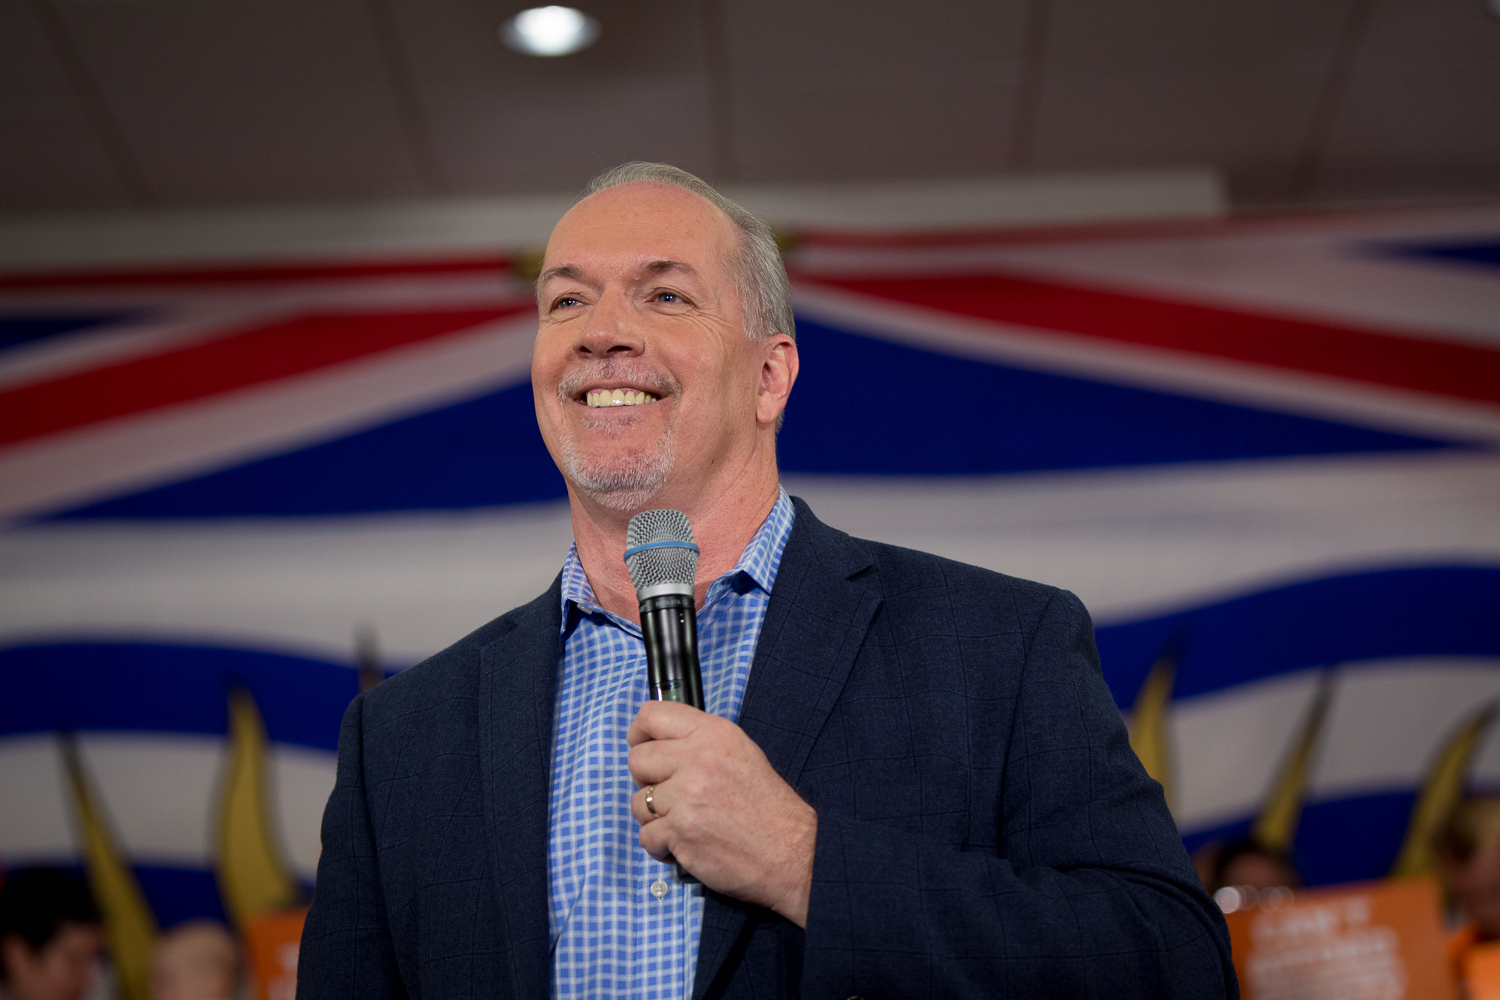 John Horgan smiling holding a microphone standing in front of a British Columbia flag